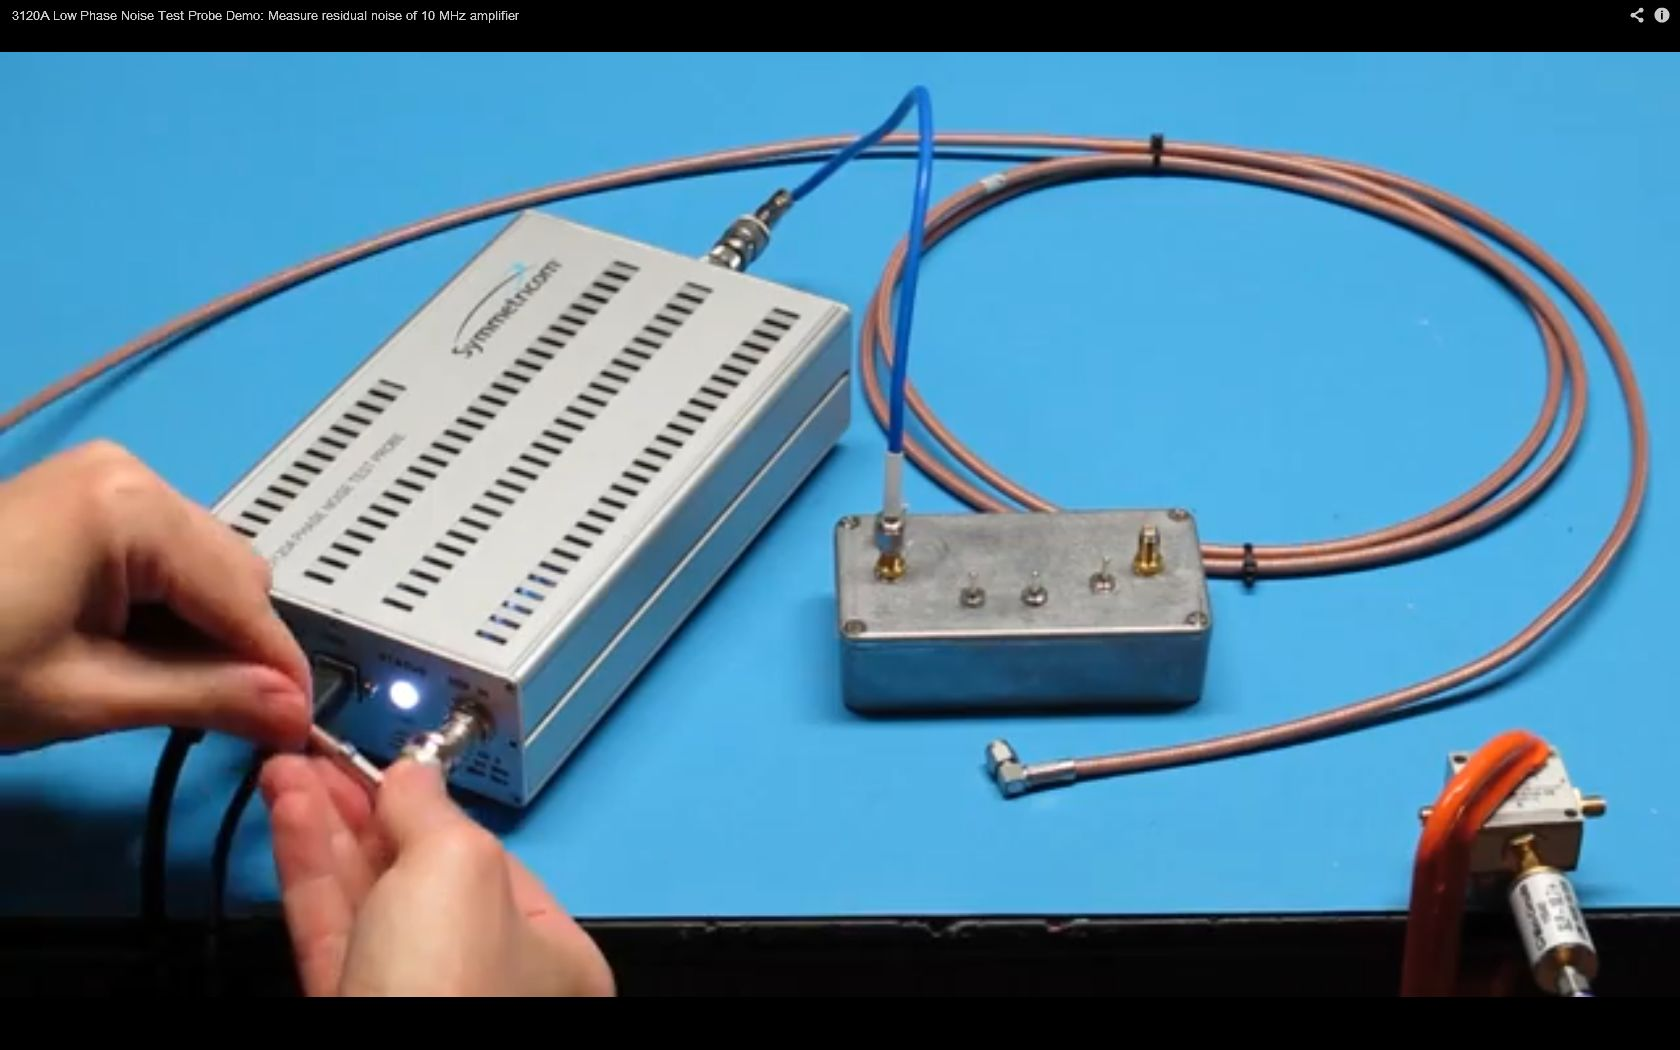 3120A Low Phase Noise Test Probe DEMO